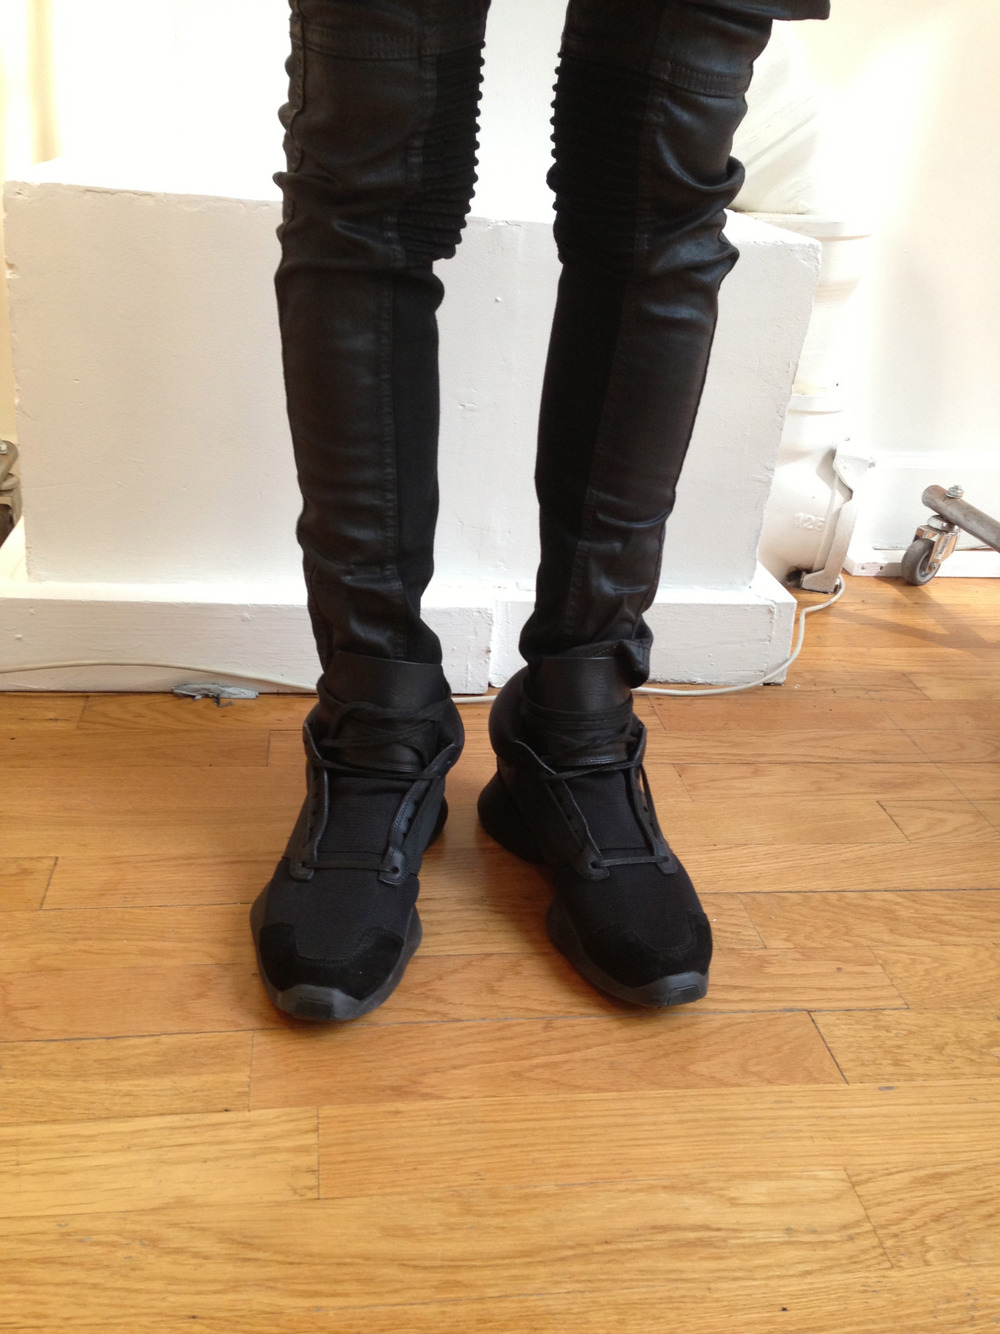 These are the shoes i want